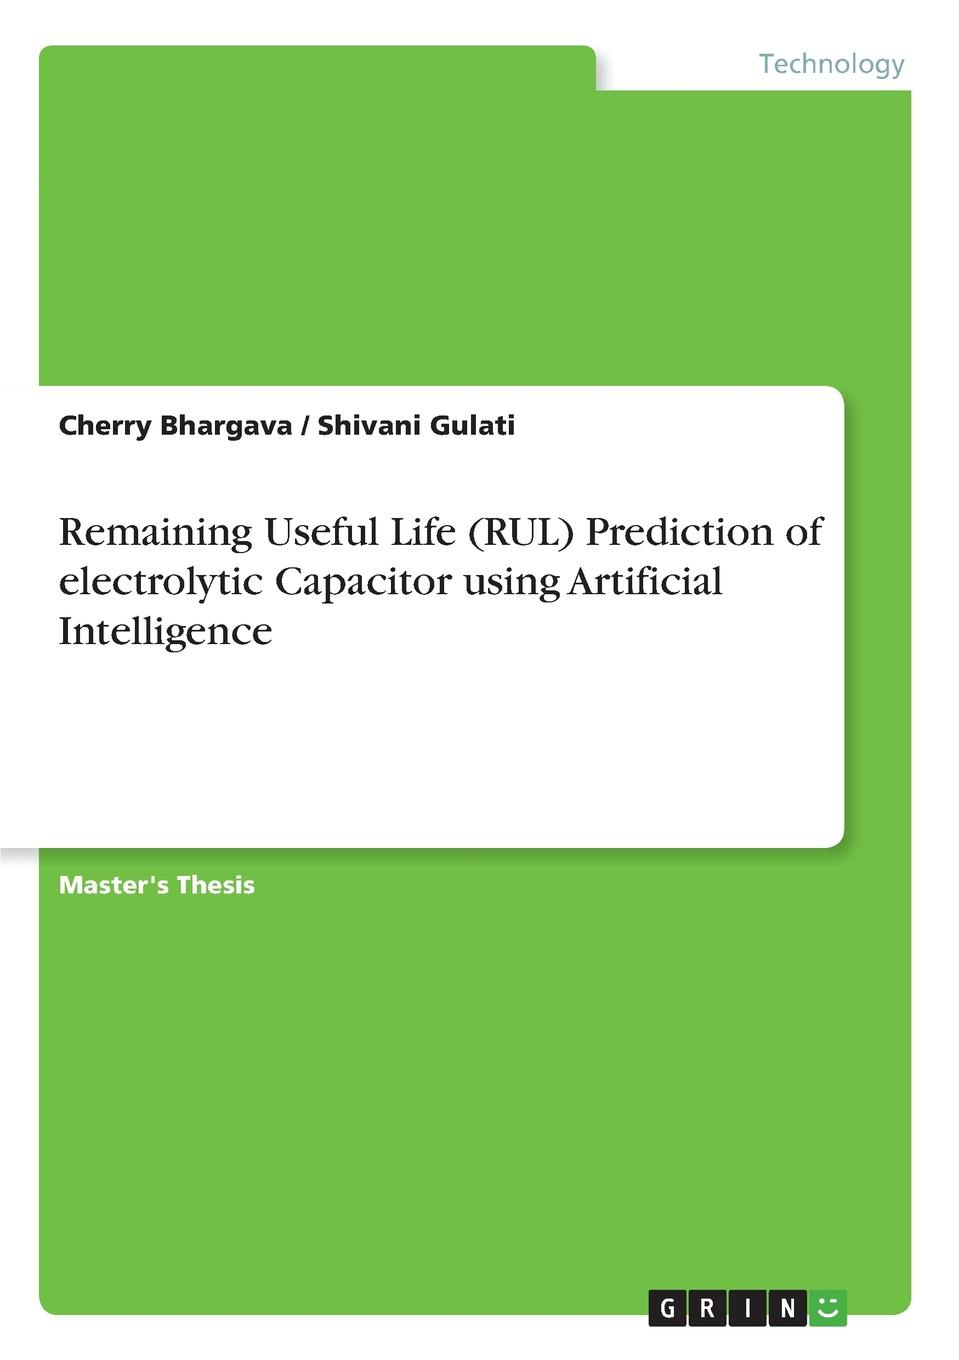 Cherry Bhargava, Shivani Gulati Remaining Useful Life (RUL) Prediction of electrolytic Capacitor using Artificial Intelligence bazu marius failure analysis a practical guide for manufacturers of electronic components and systems